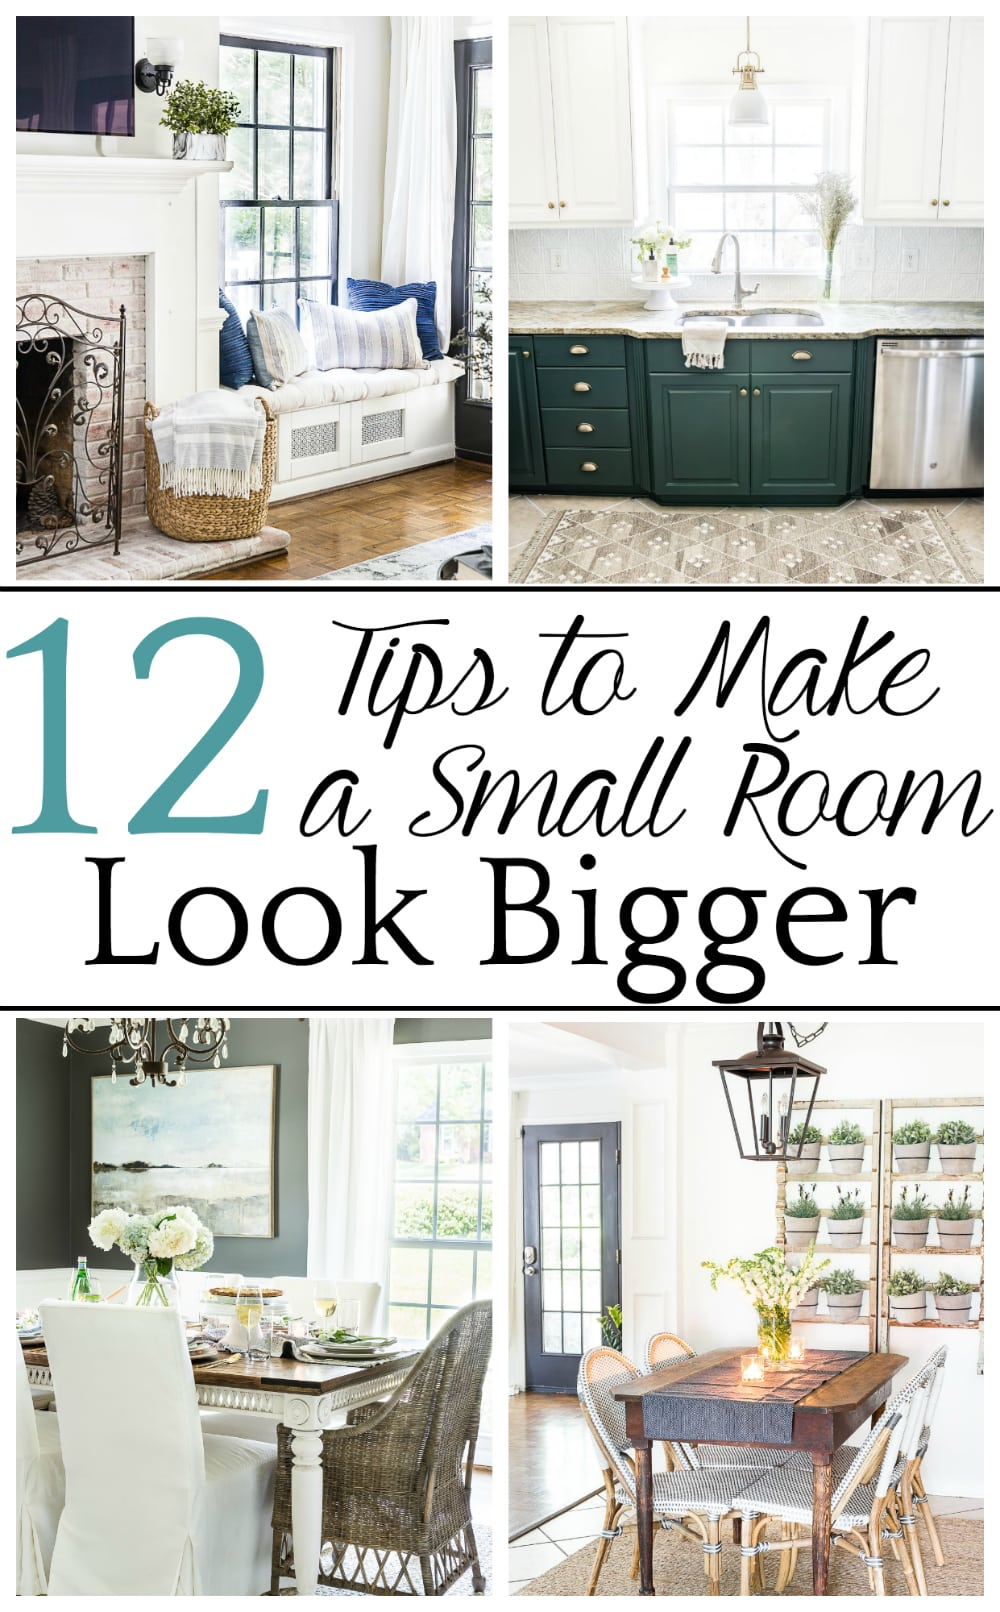 make living room spacious using simple and smart tricks how to get started in interior design 12 tips for decorating, furniture selecting, choosing paint colors, and  utilizing function to